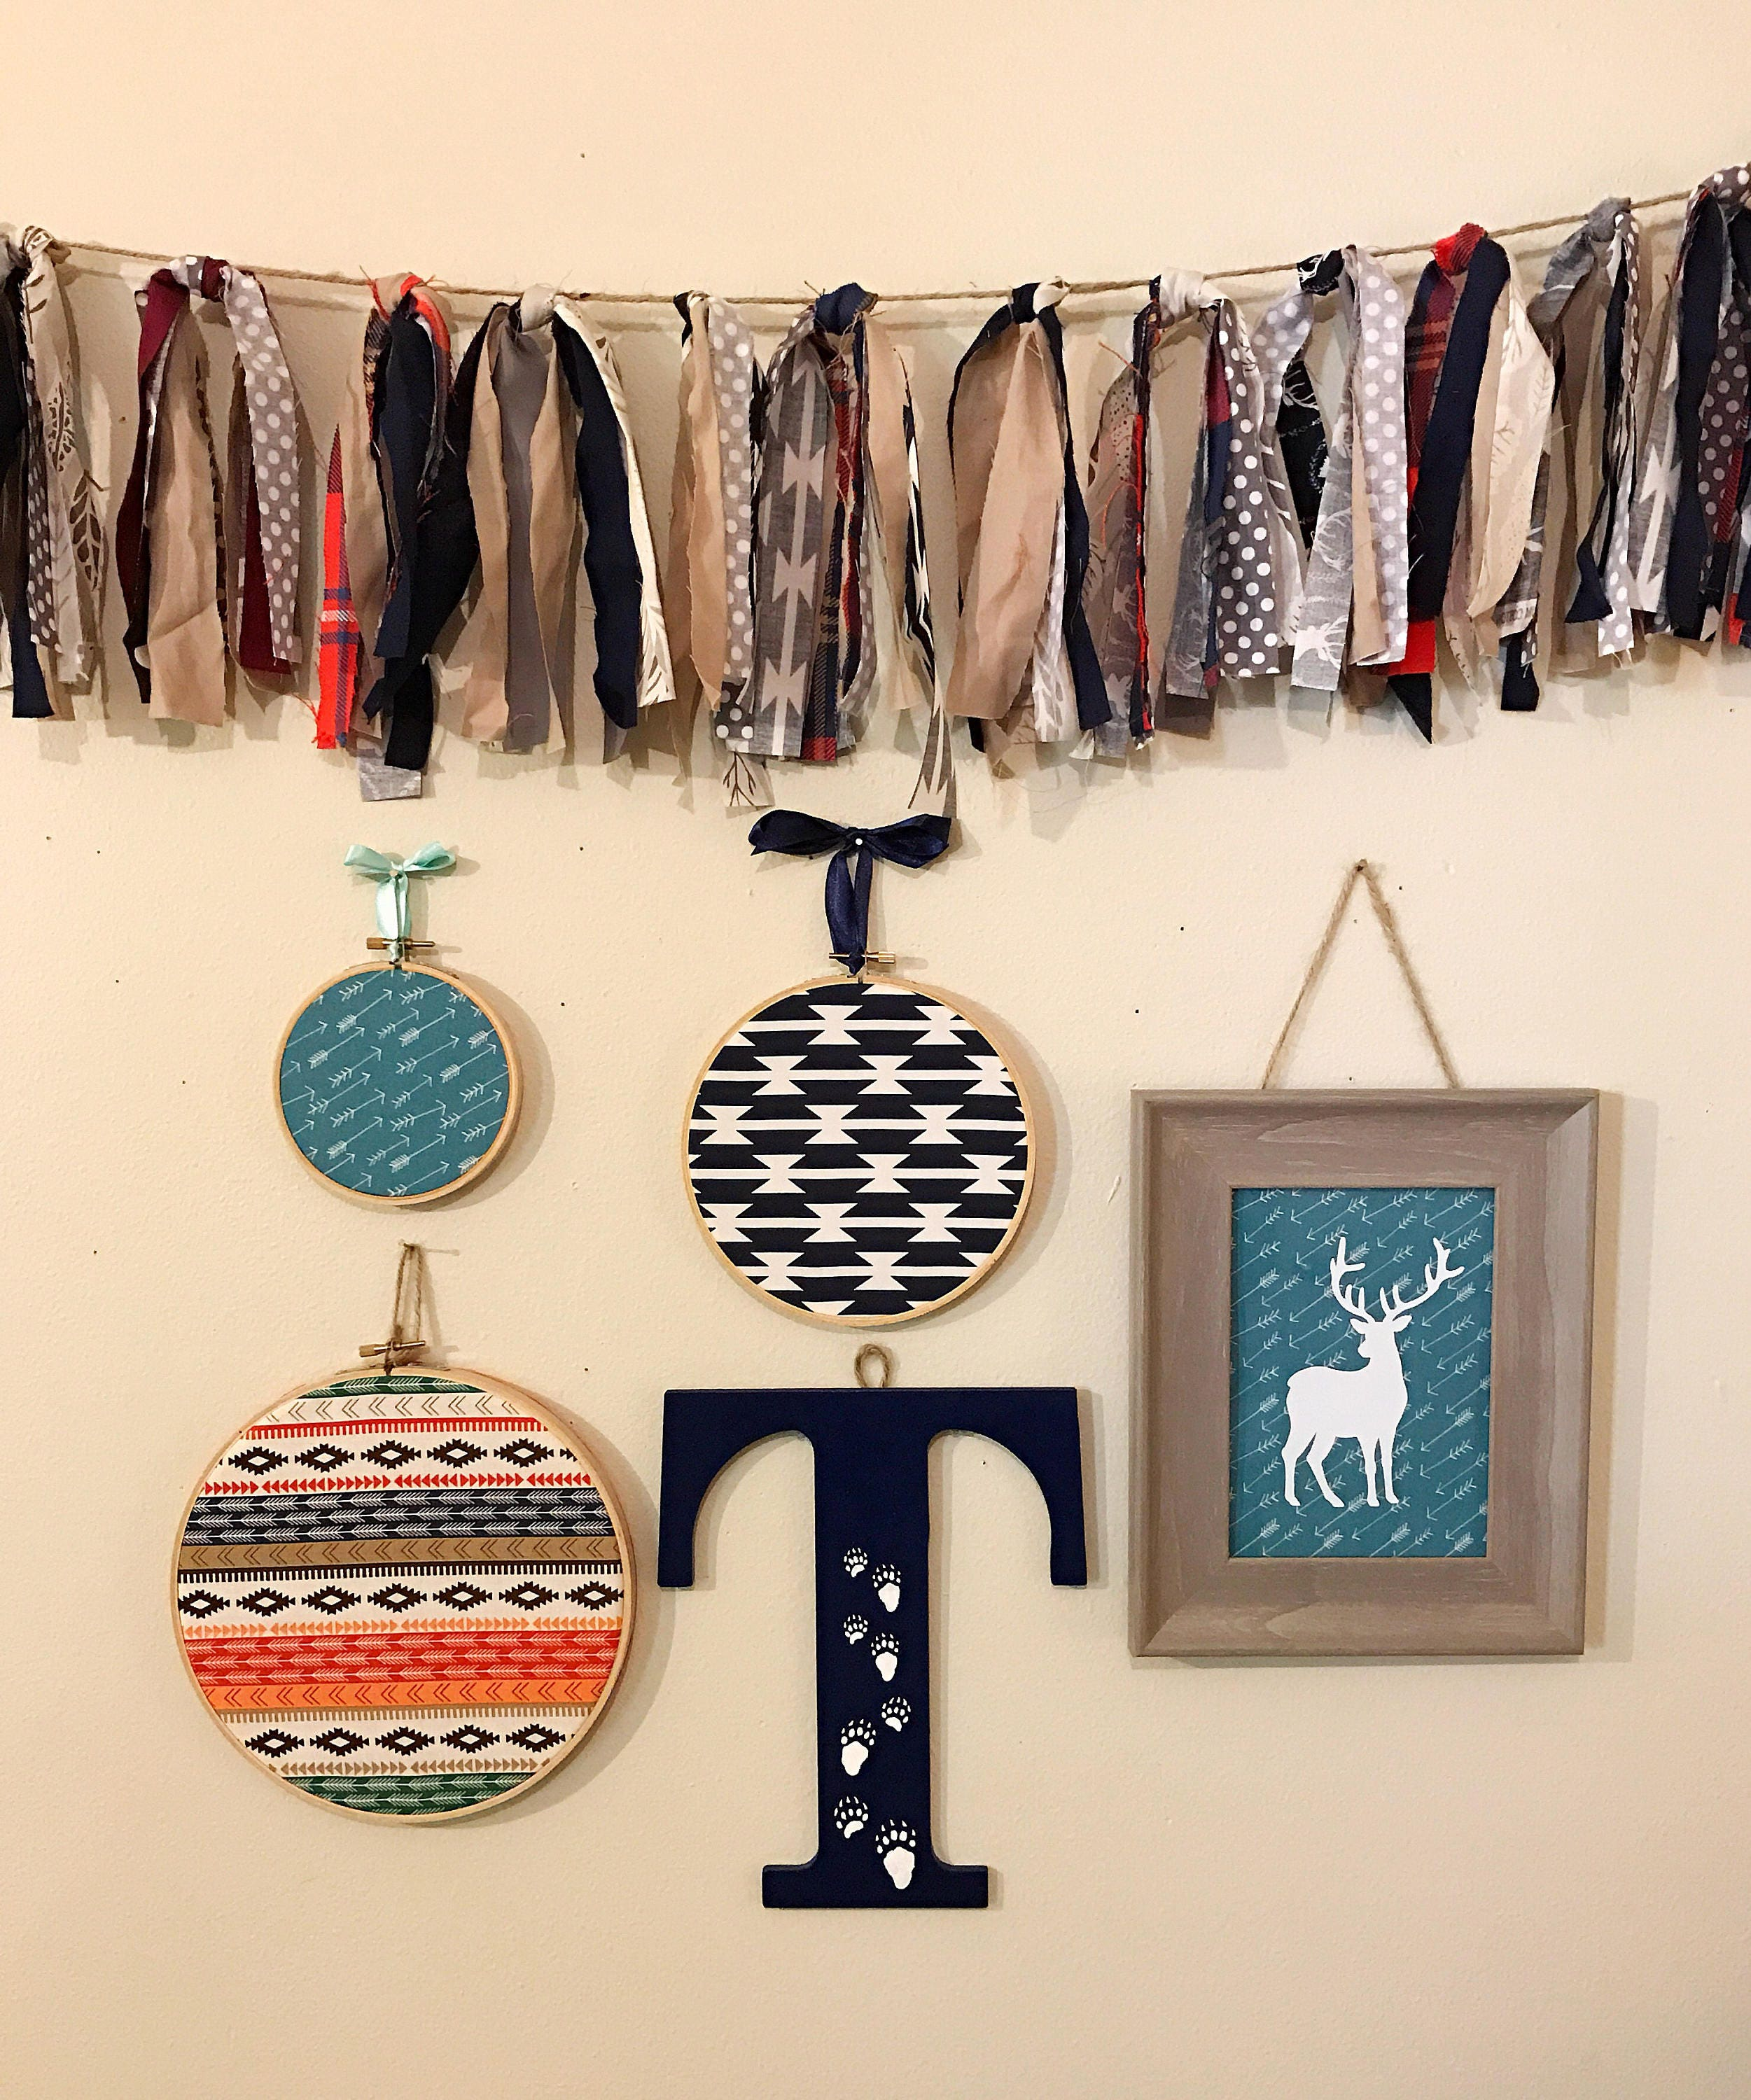 Nursery wall decor 95 letter t navy with white bear paw prints nursery wall decor 95 letter t navy with white bear paw prints wall amipublicfo Image collections